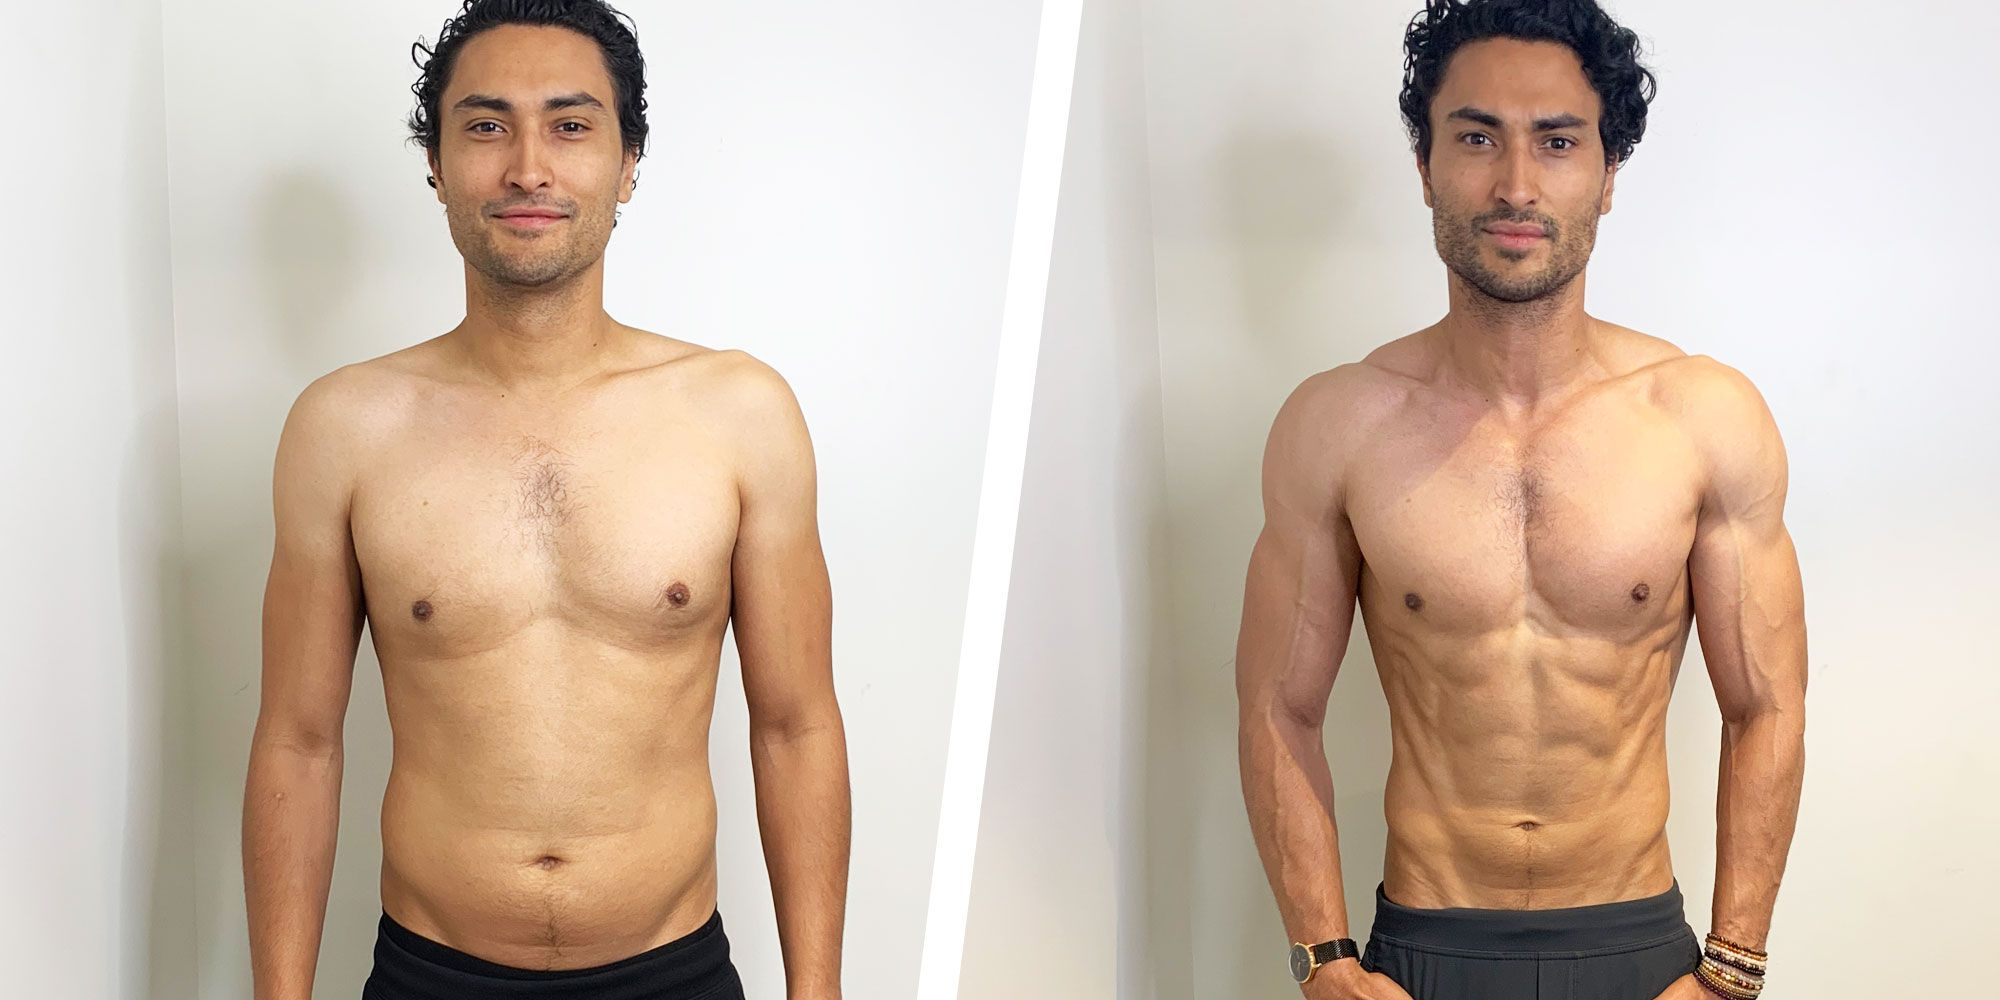 Simple Diet Changes Helped This Guy Build Muscle and Get Shredded in 6 Weeks